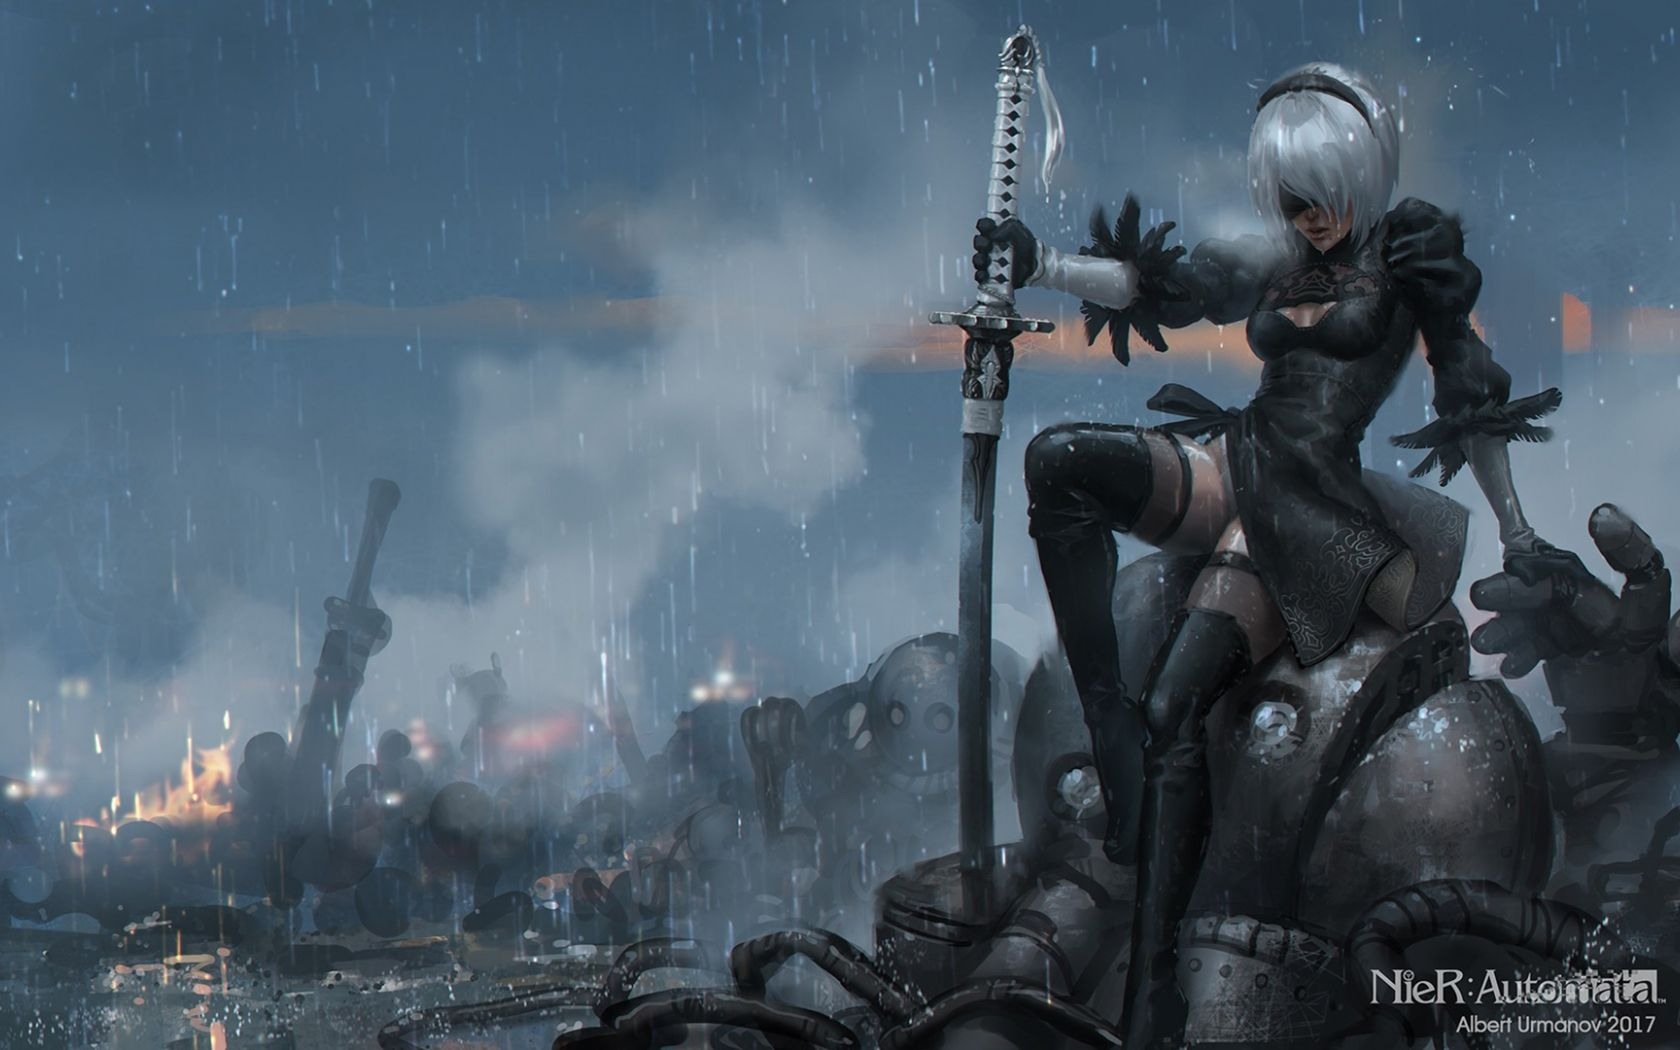 Free download NieR Automata Game 279 Wallpapers 3 [1920x1080] for